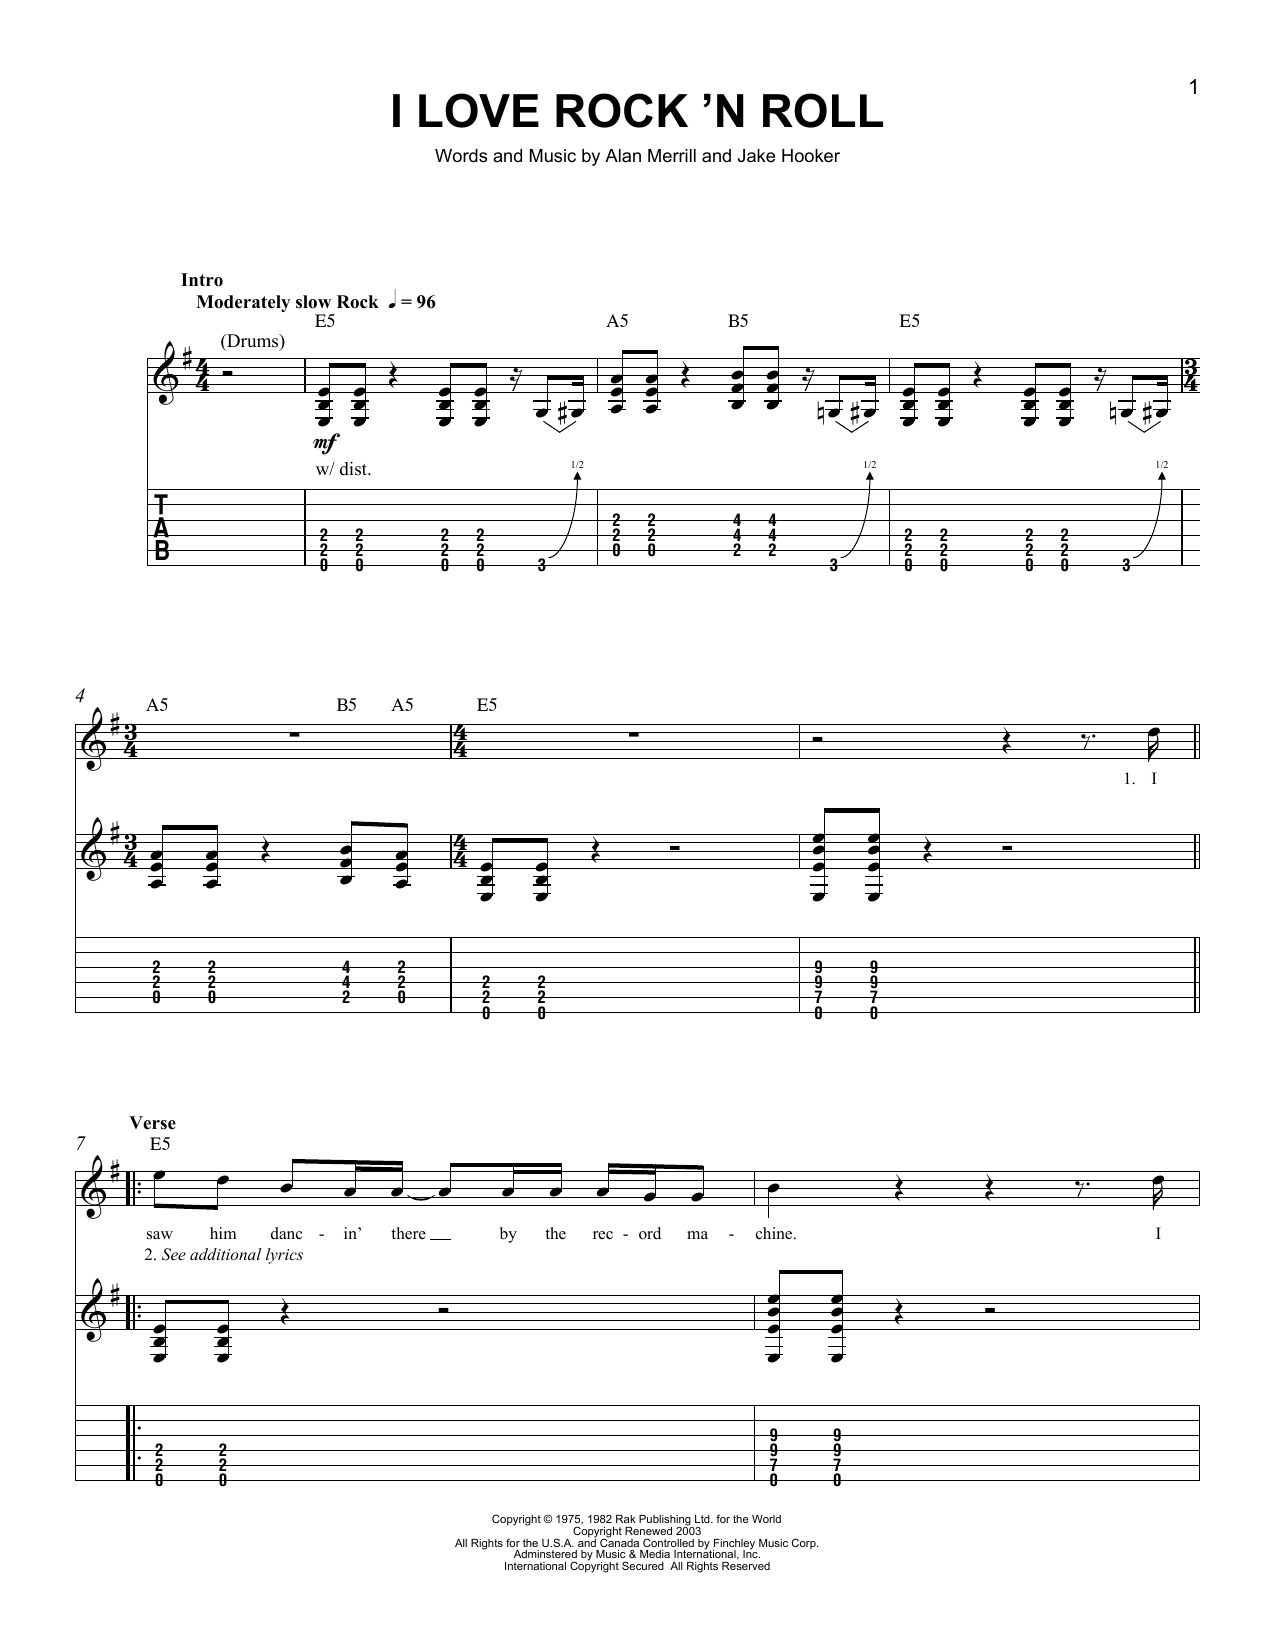 I Love Rock 'N Roll Sheet Music